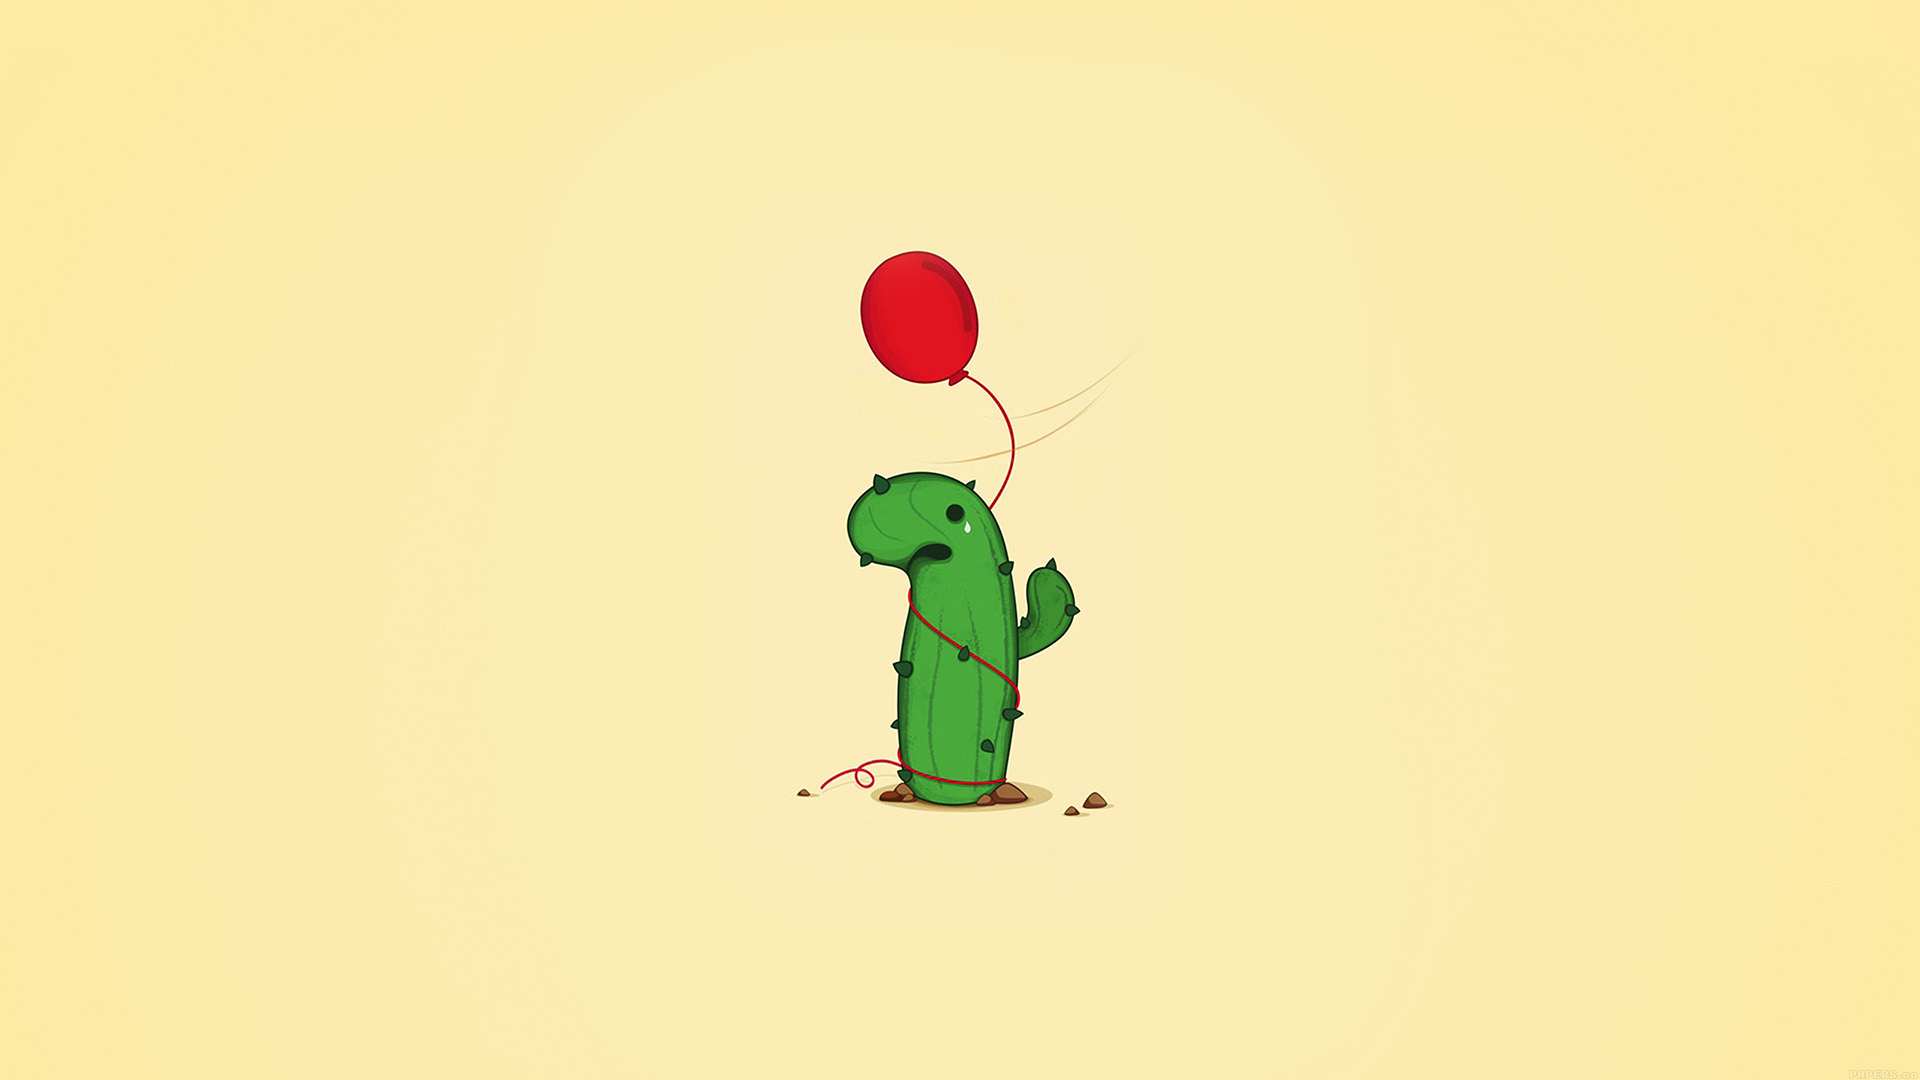 Fall Desktop Wallpaper Mac Ai35 Cute Cactus Ballon Illust Art Minimal Papers Co